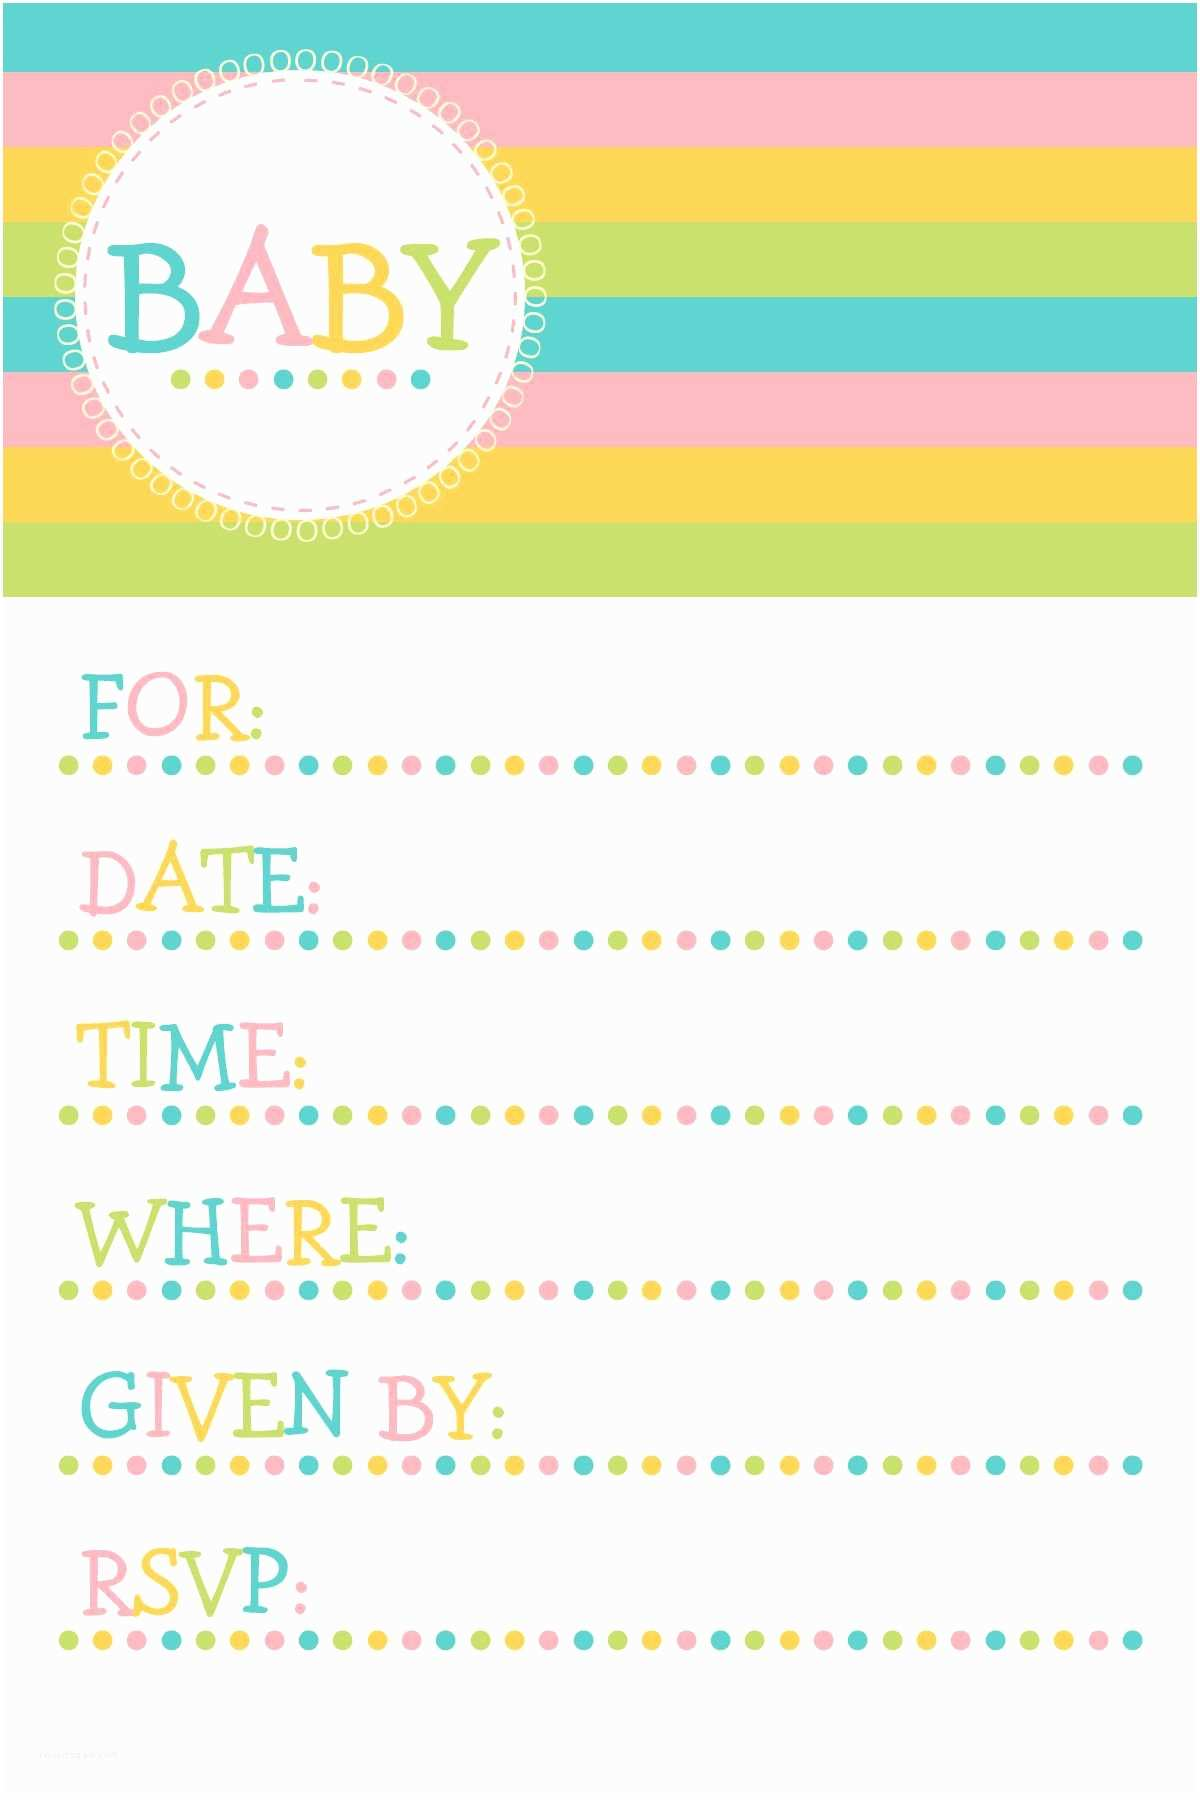 Invitations for Baby Shower Baby Shower Invitation Baby Shower Invite Template